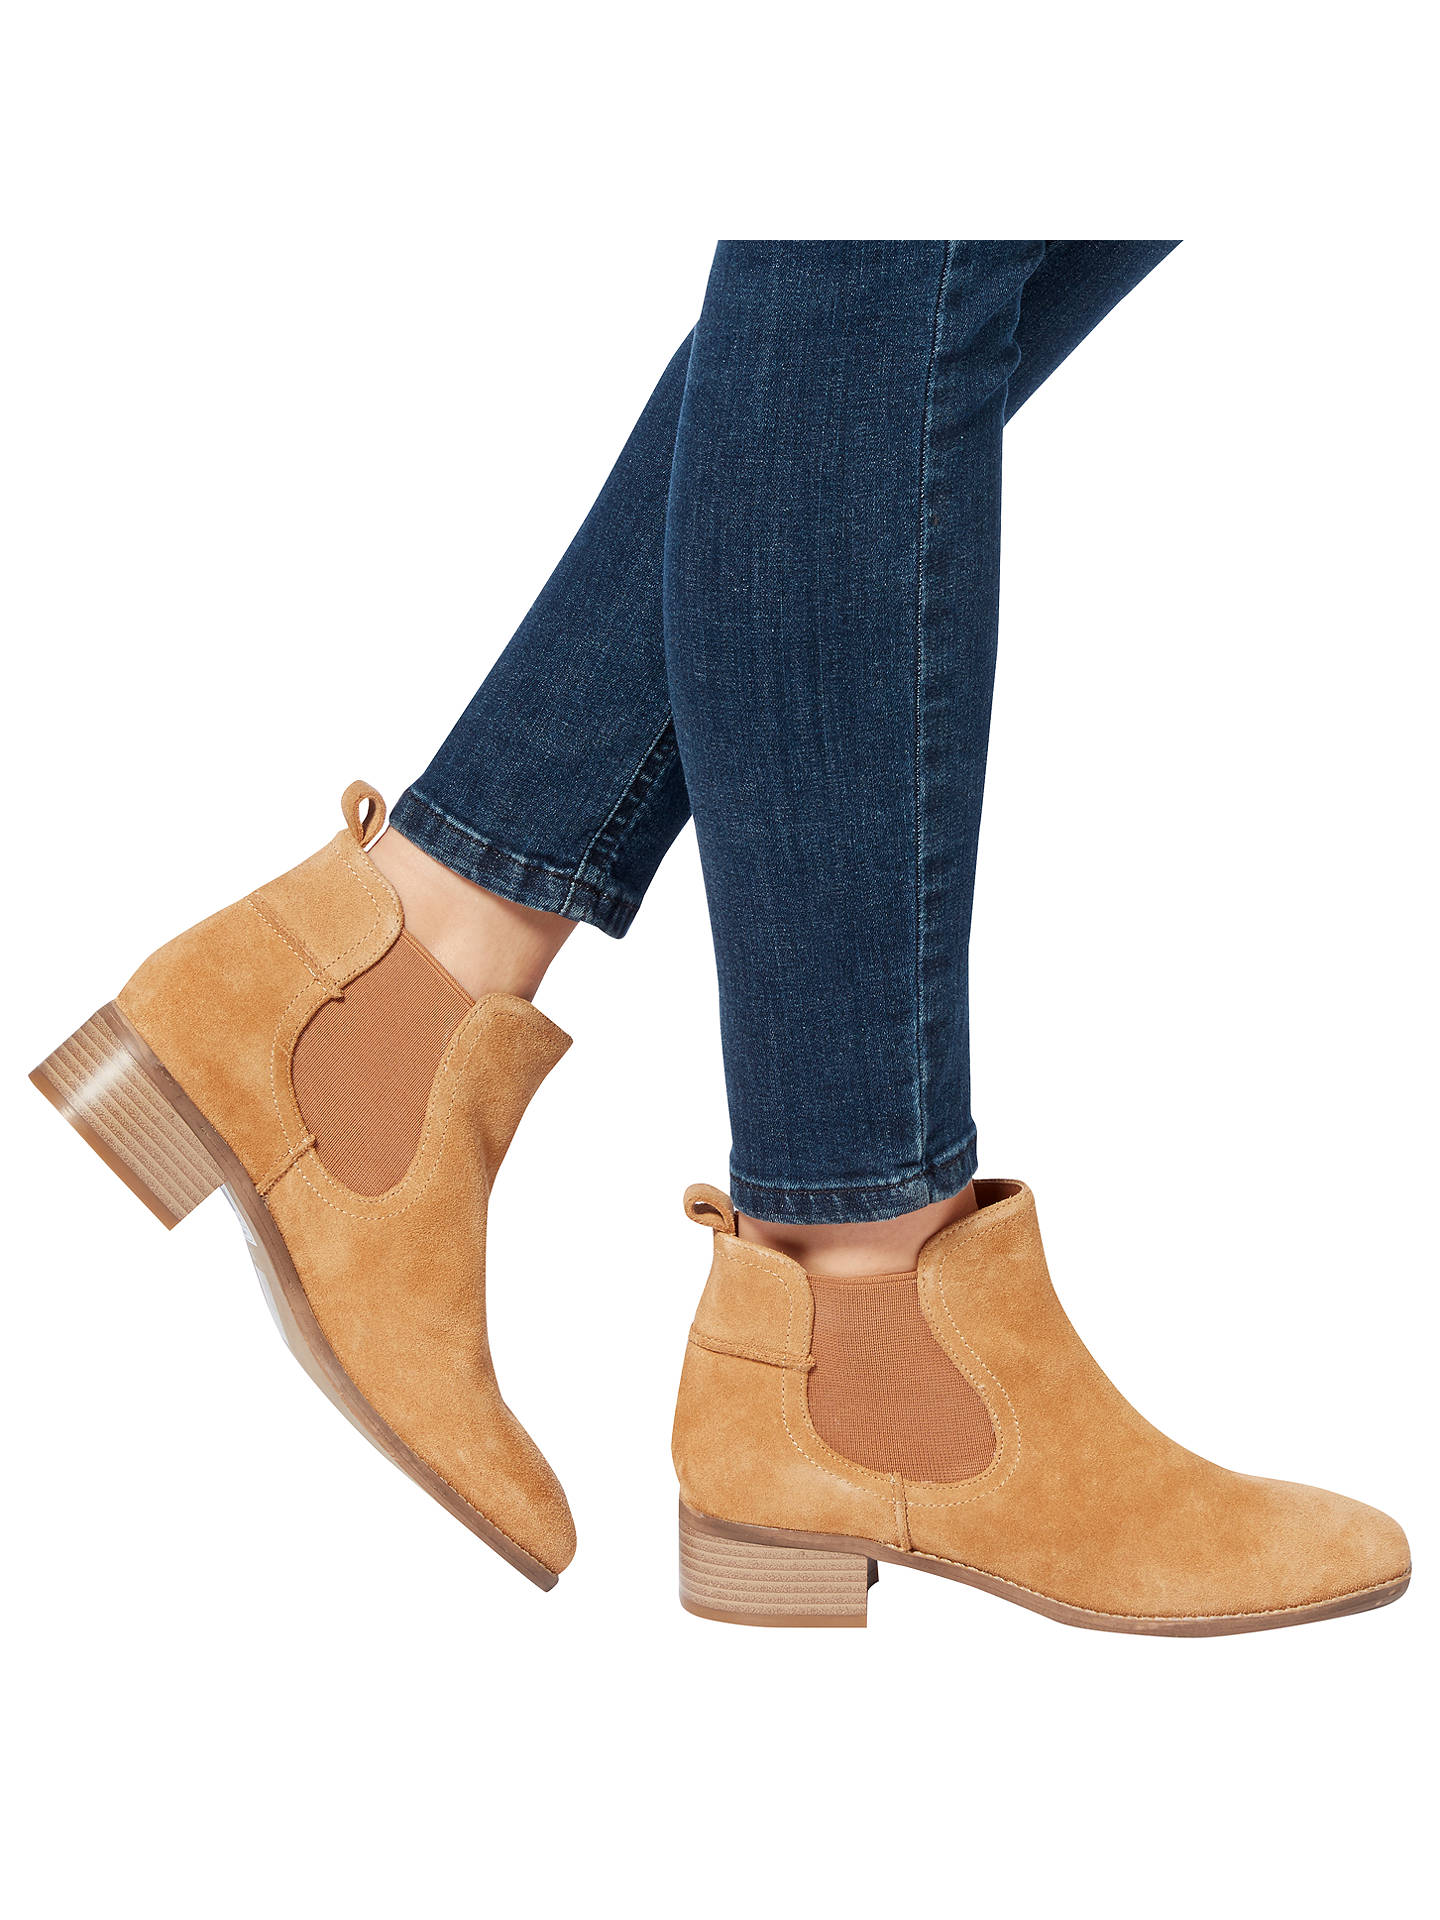 7871110ba2a Buy Steve Madden Dicey Ankle Chelsea Boots